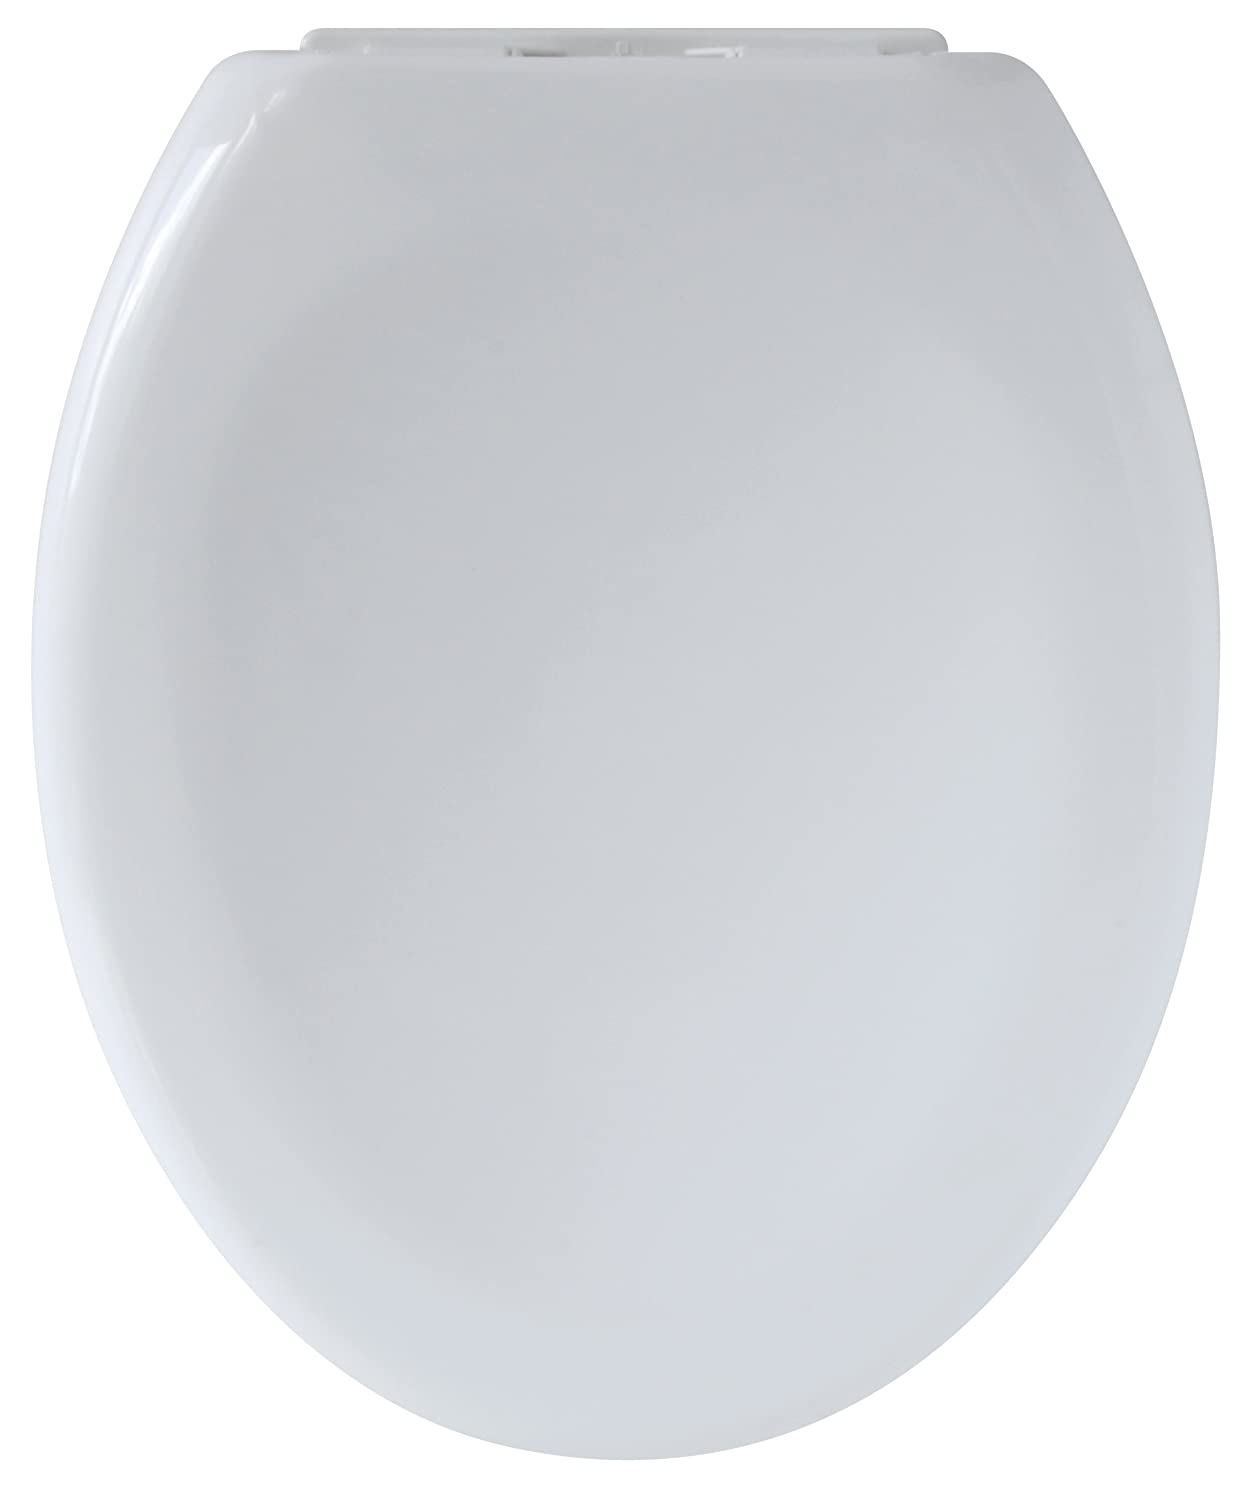 Gelco 708690 Soft Close Toilet Seat - Plastic, White - 45 x 37 x 6 cm